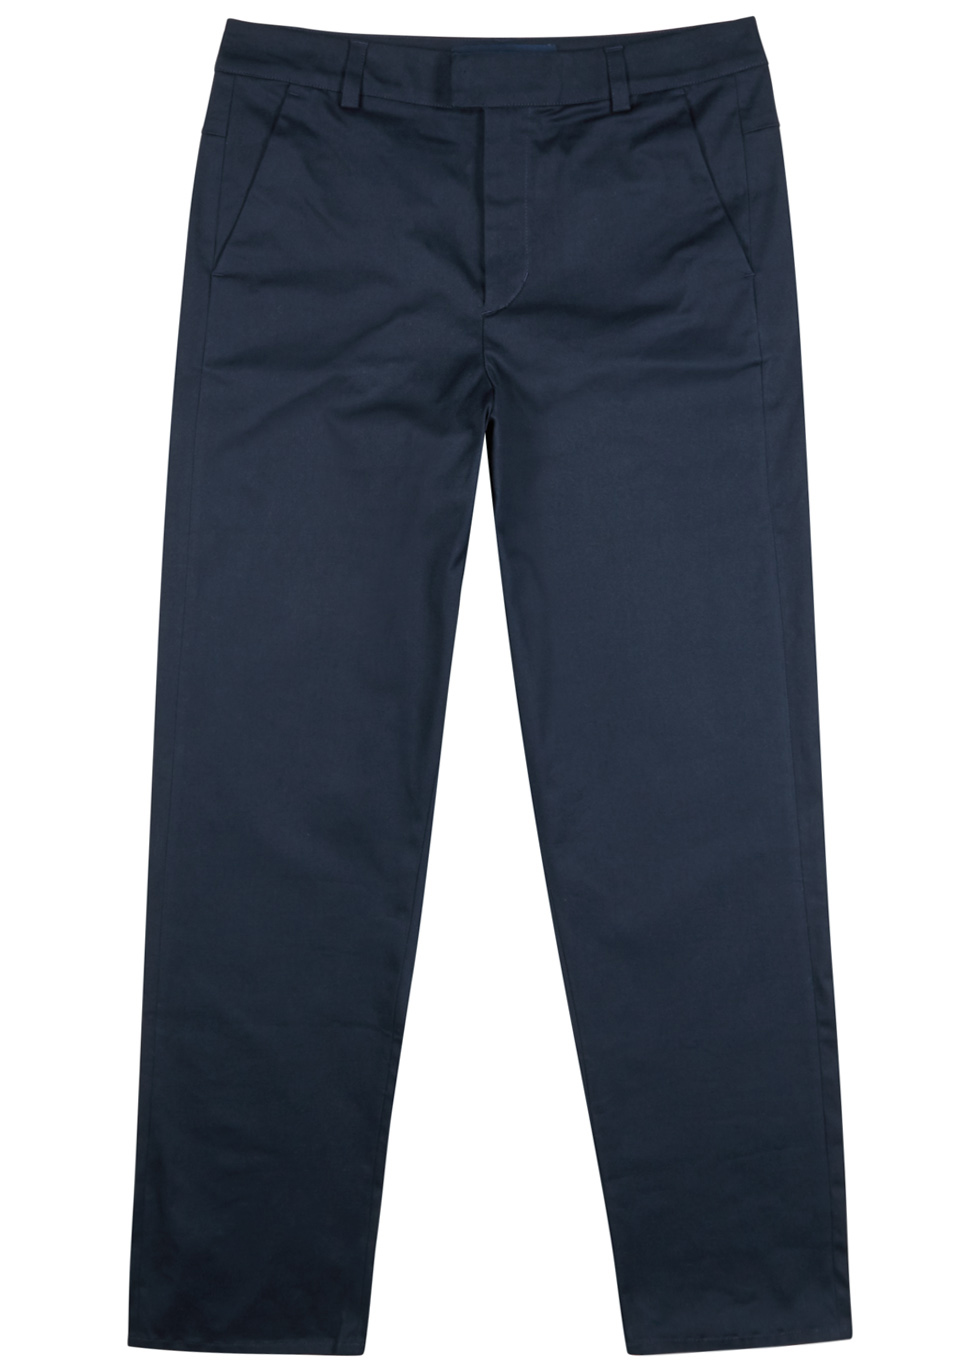 NATURAL SELECTION BOXER NAVY STRETCH-TWILL CHINOS